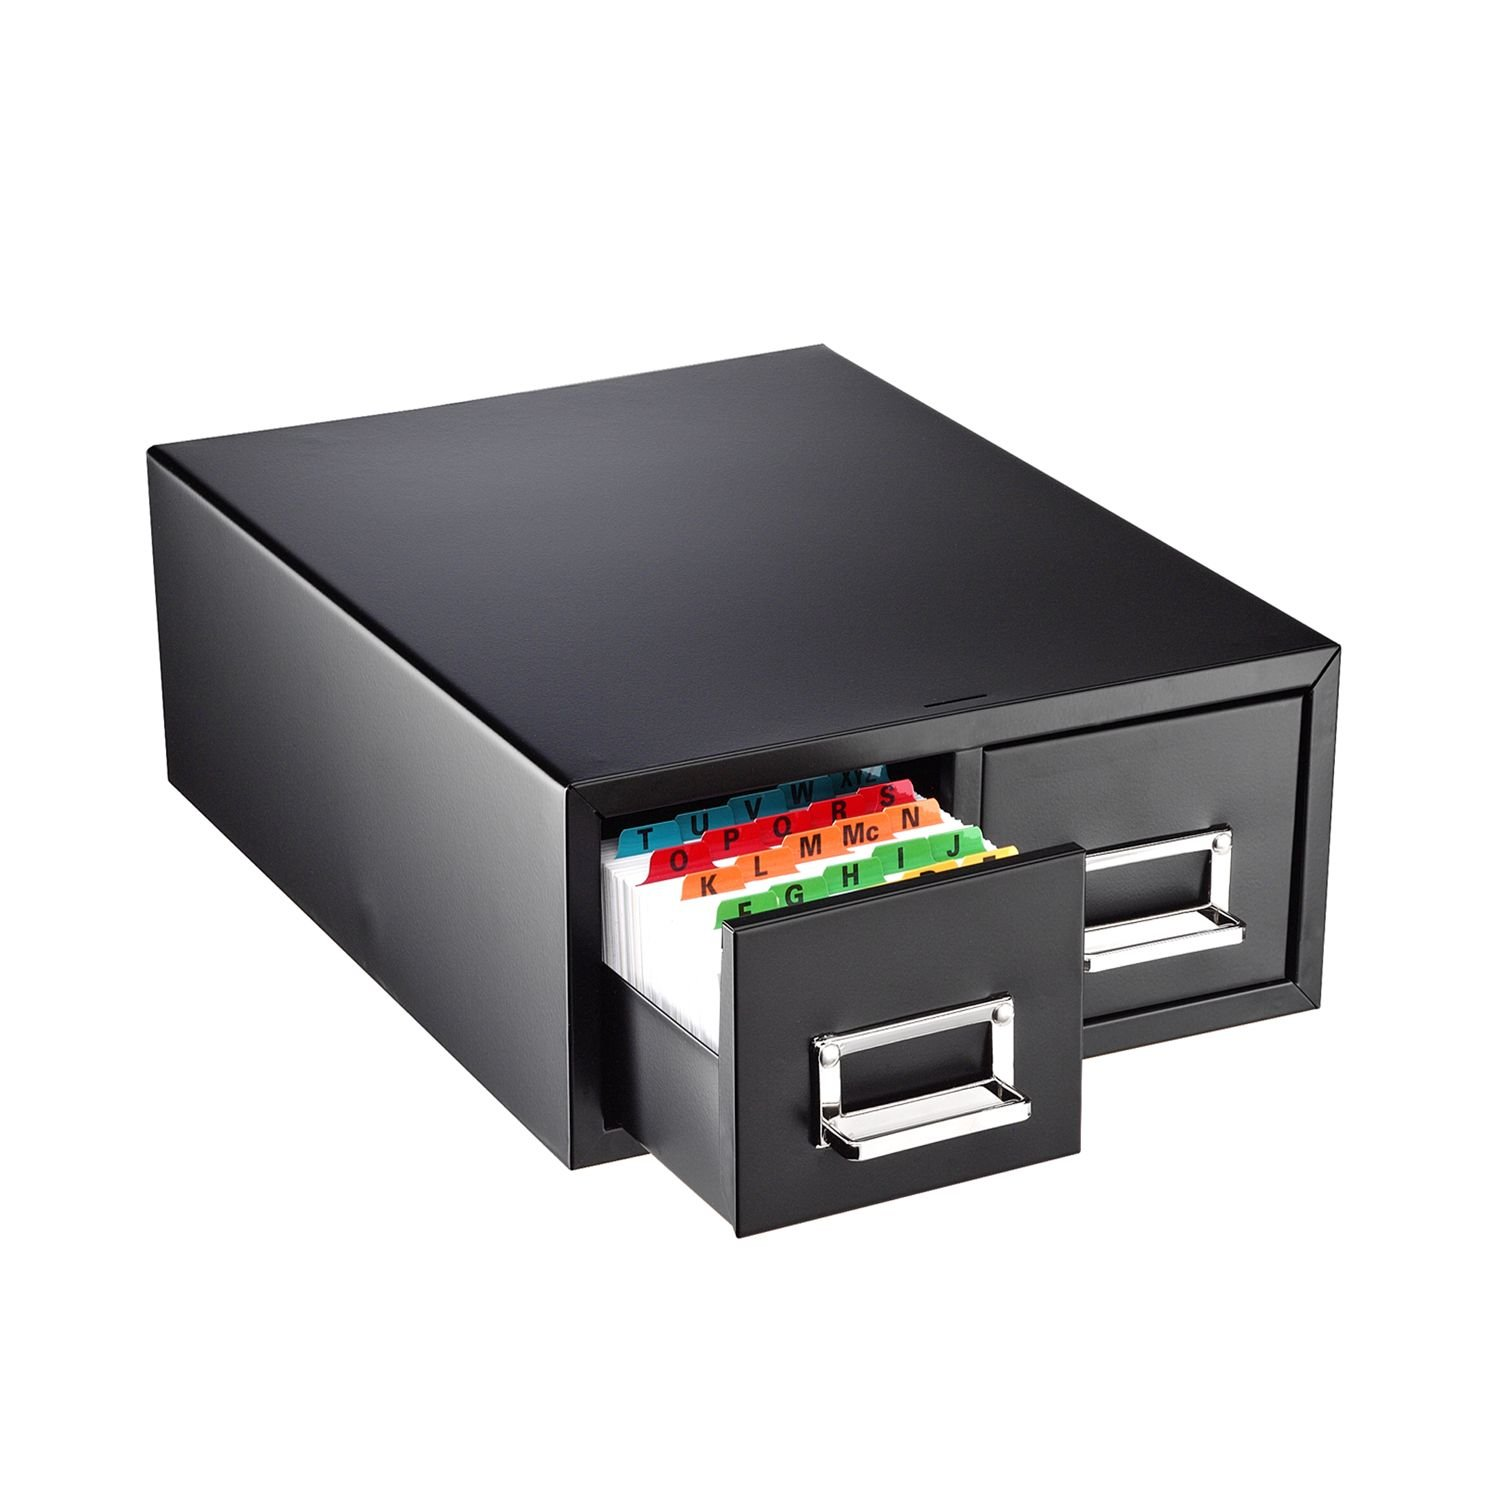 Amazon.com : SteelMaster 263F4616DBLA Drawer Card Cabinet Holds 3, 000 4 X  6 Cards, 14 1/2 X 16 X 6 1/4 : Index Card Files : Office Products